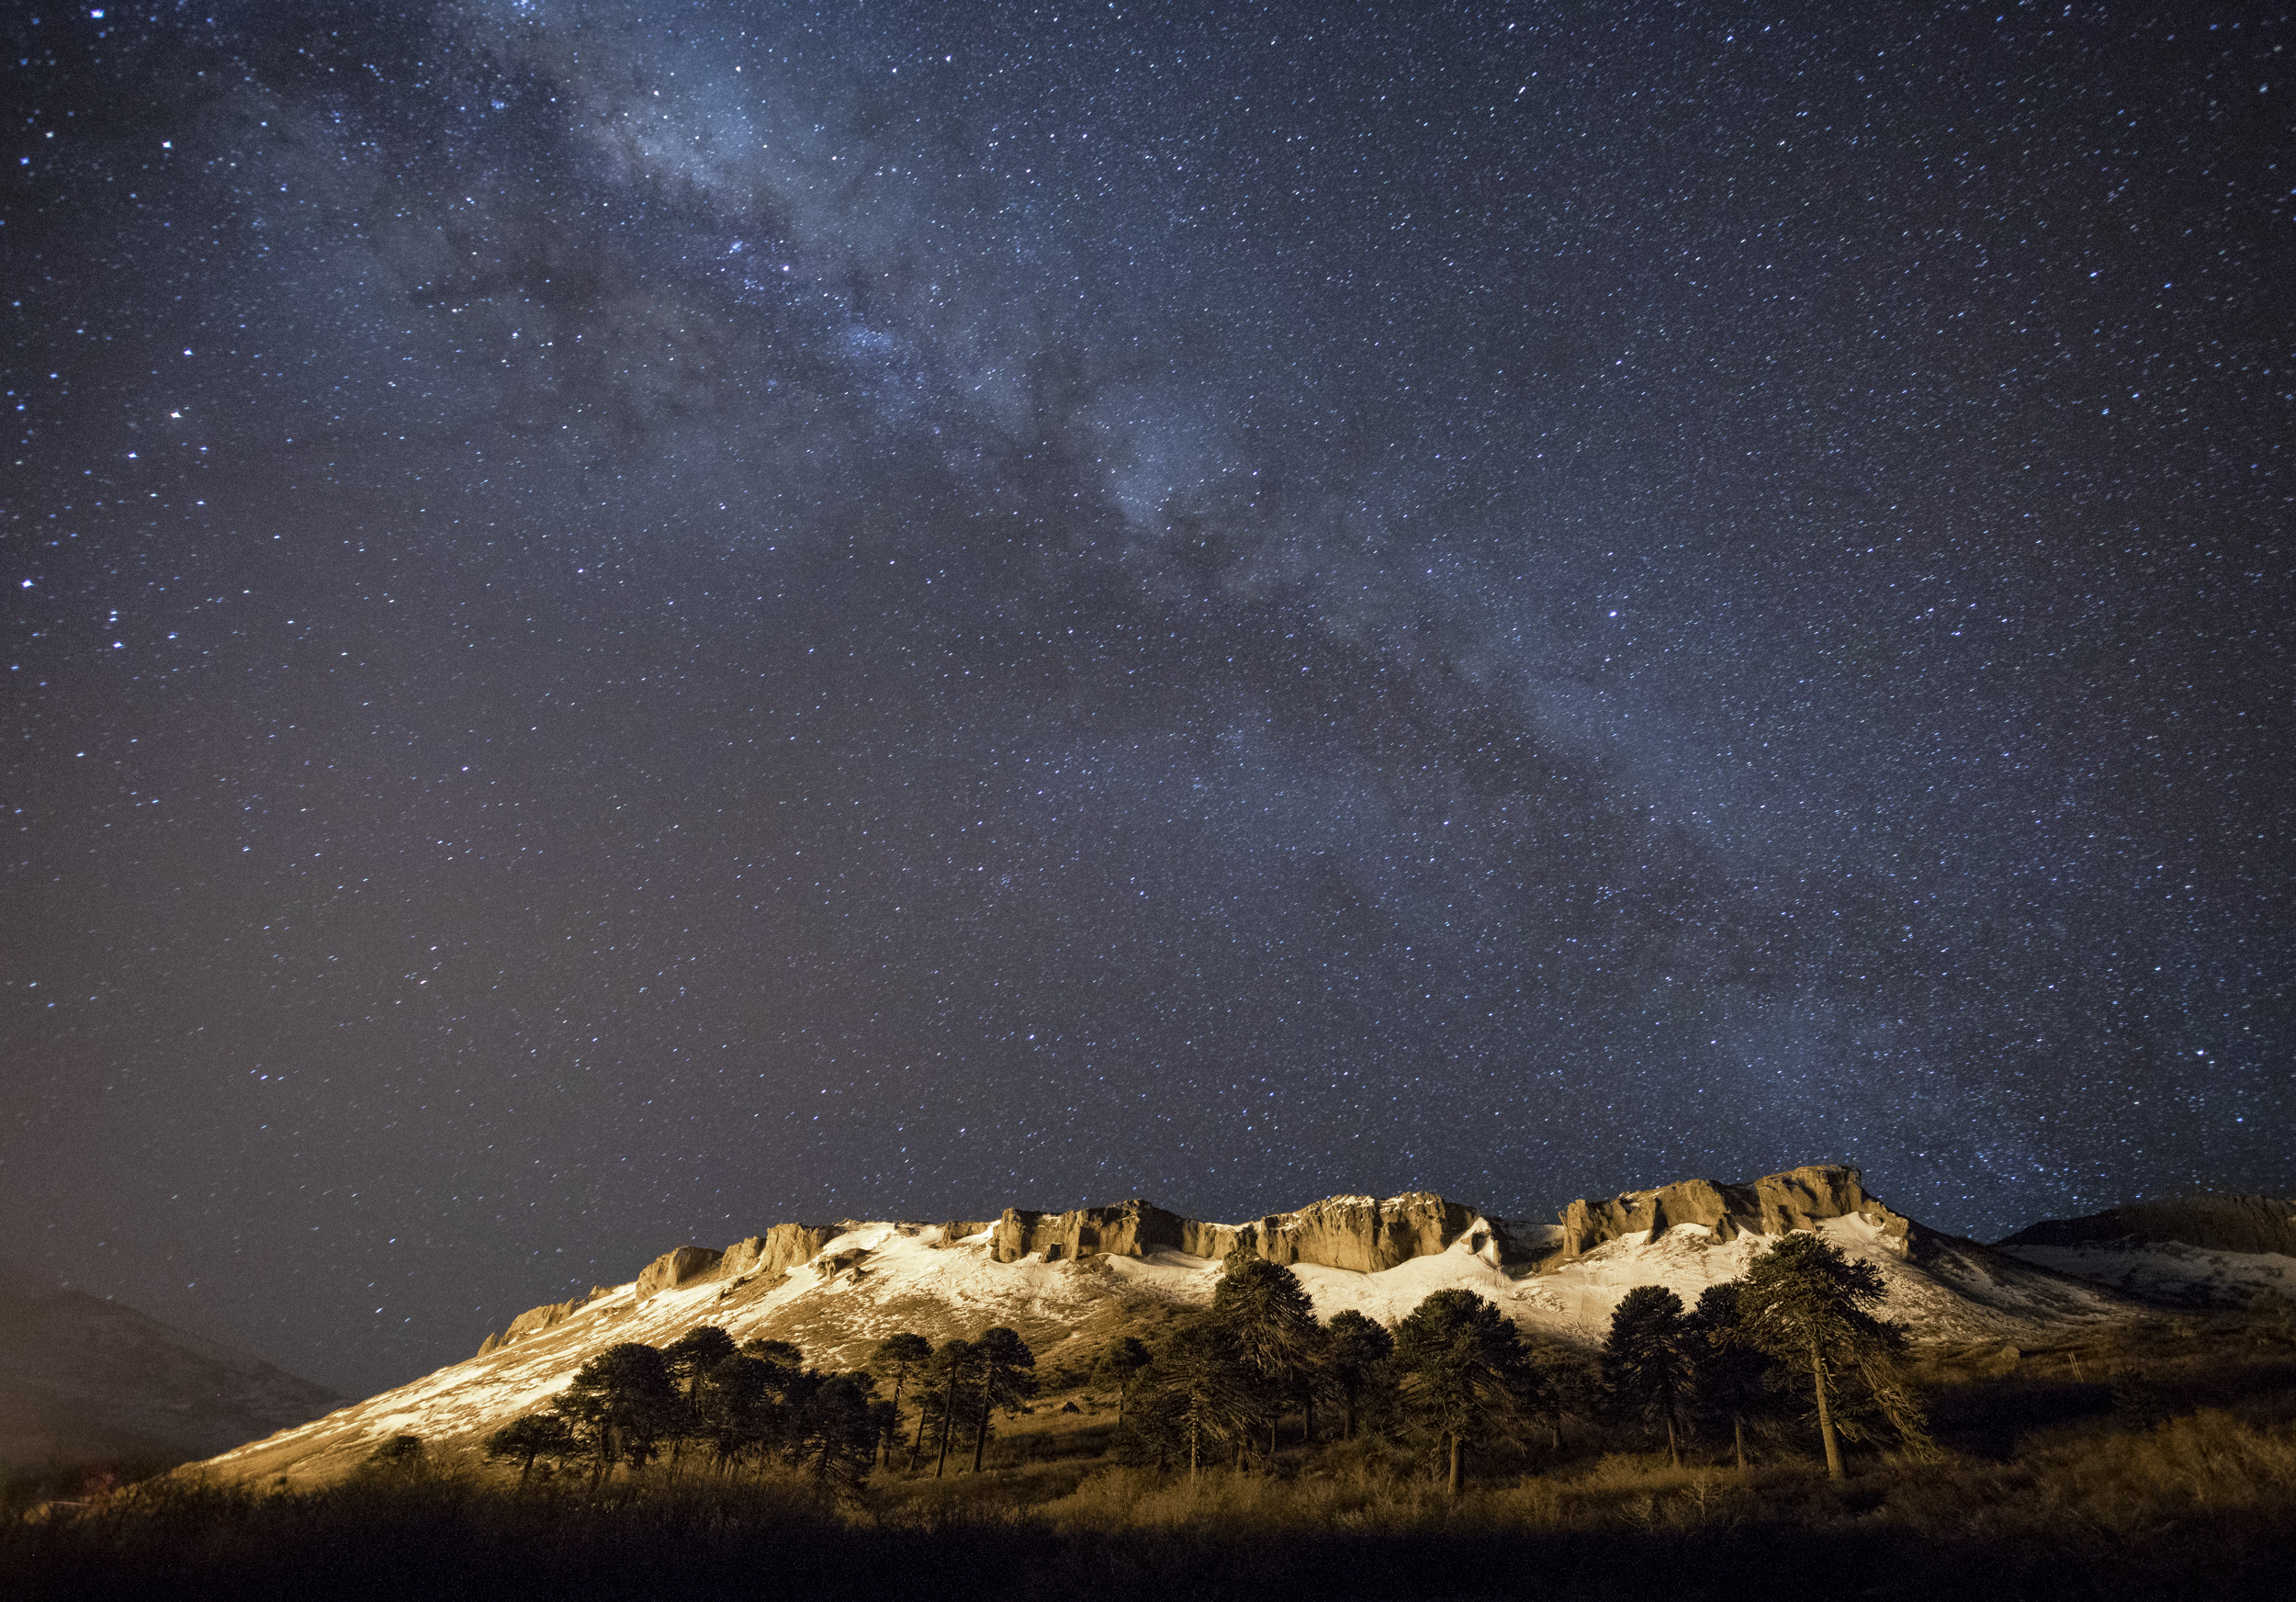 The Milky Way above some really cool terrain that we did not ride.